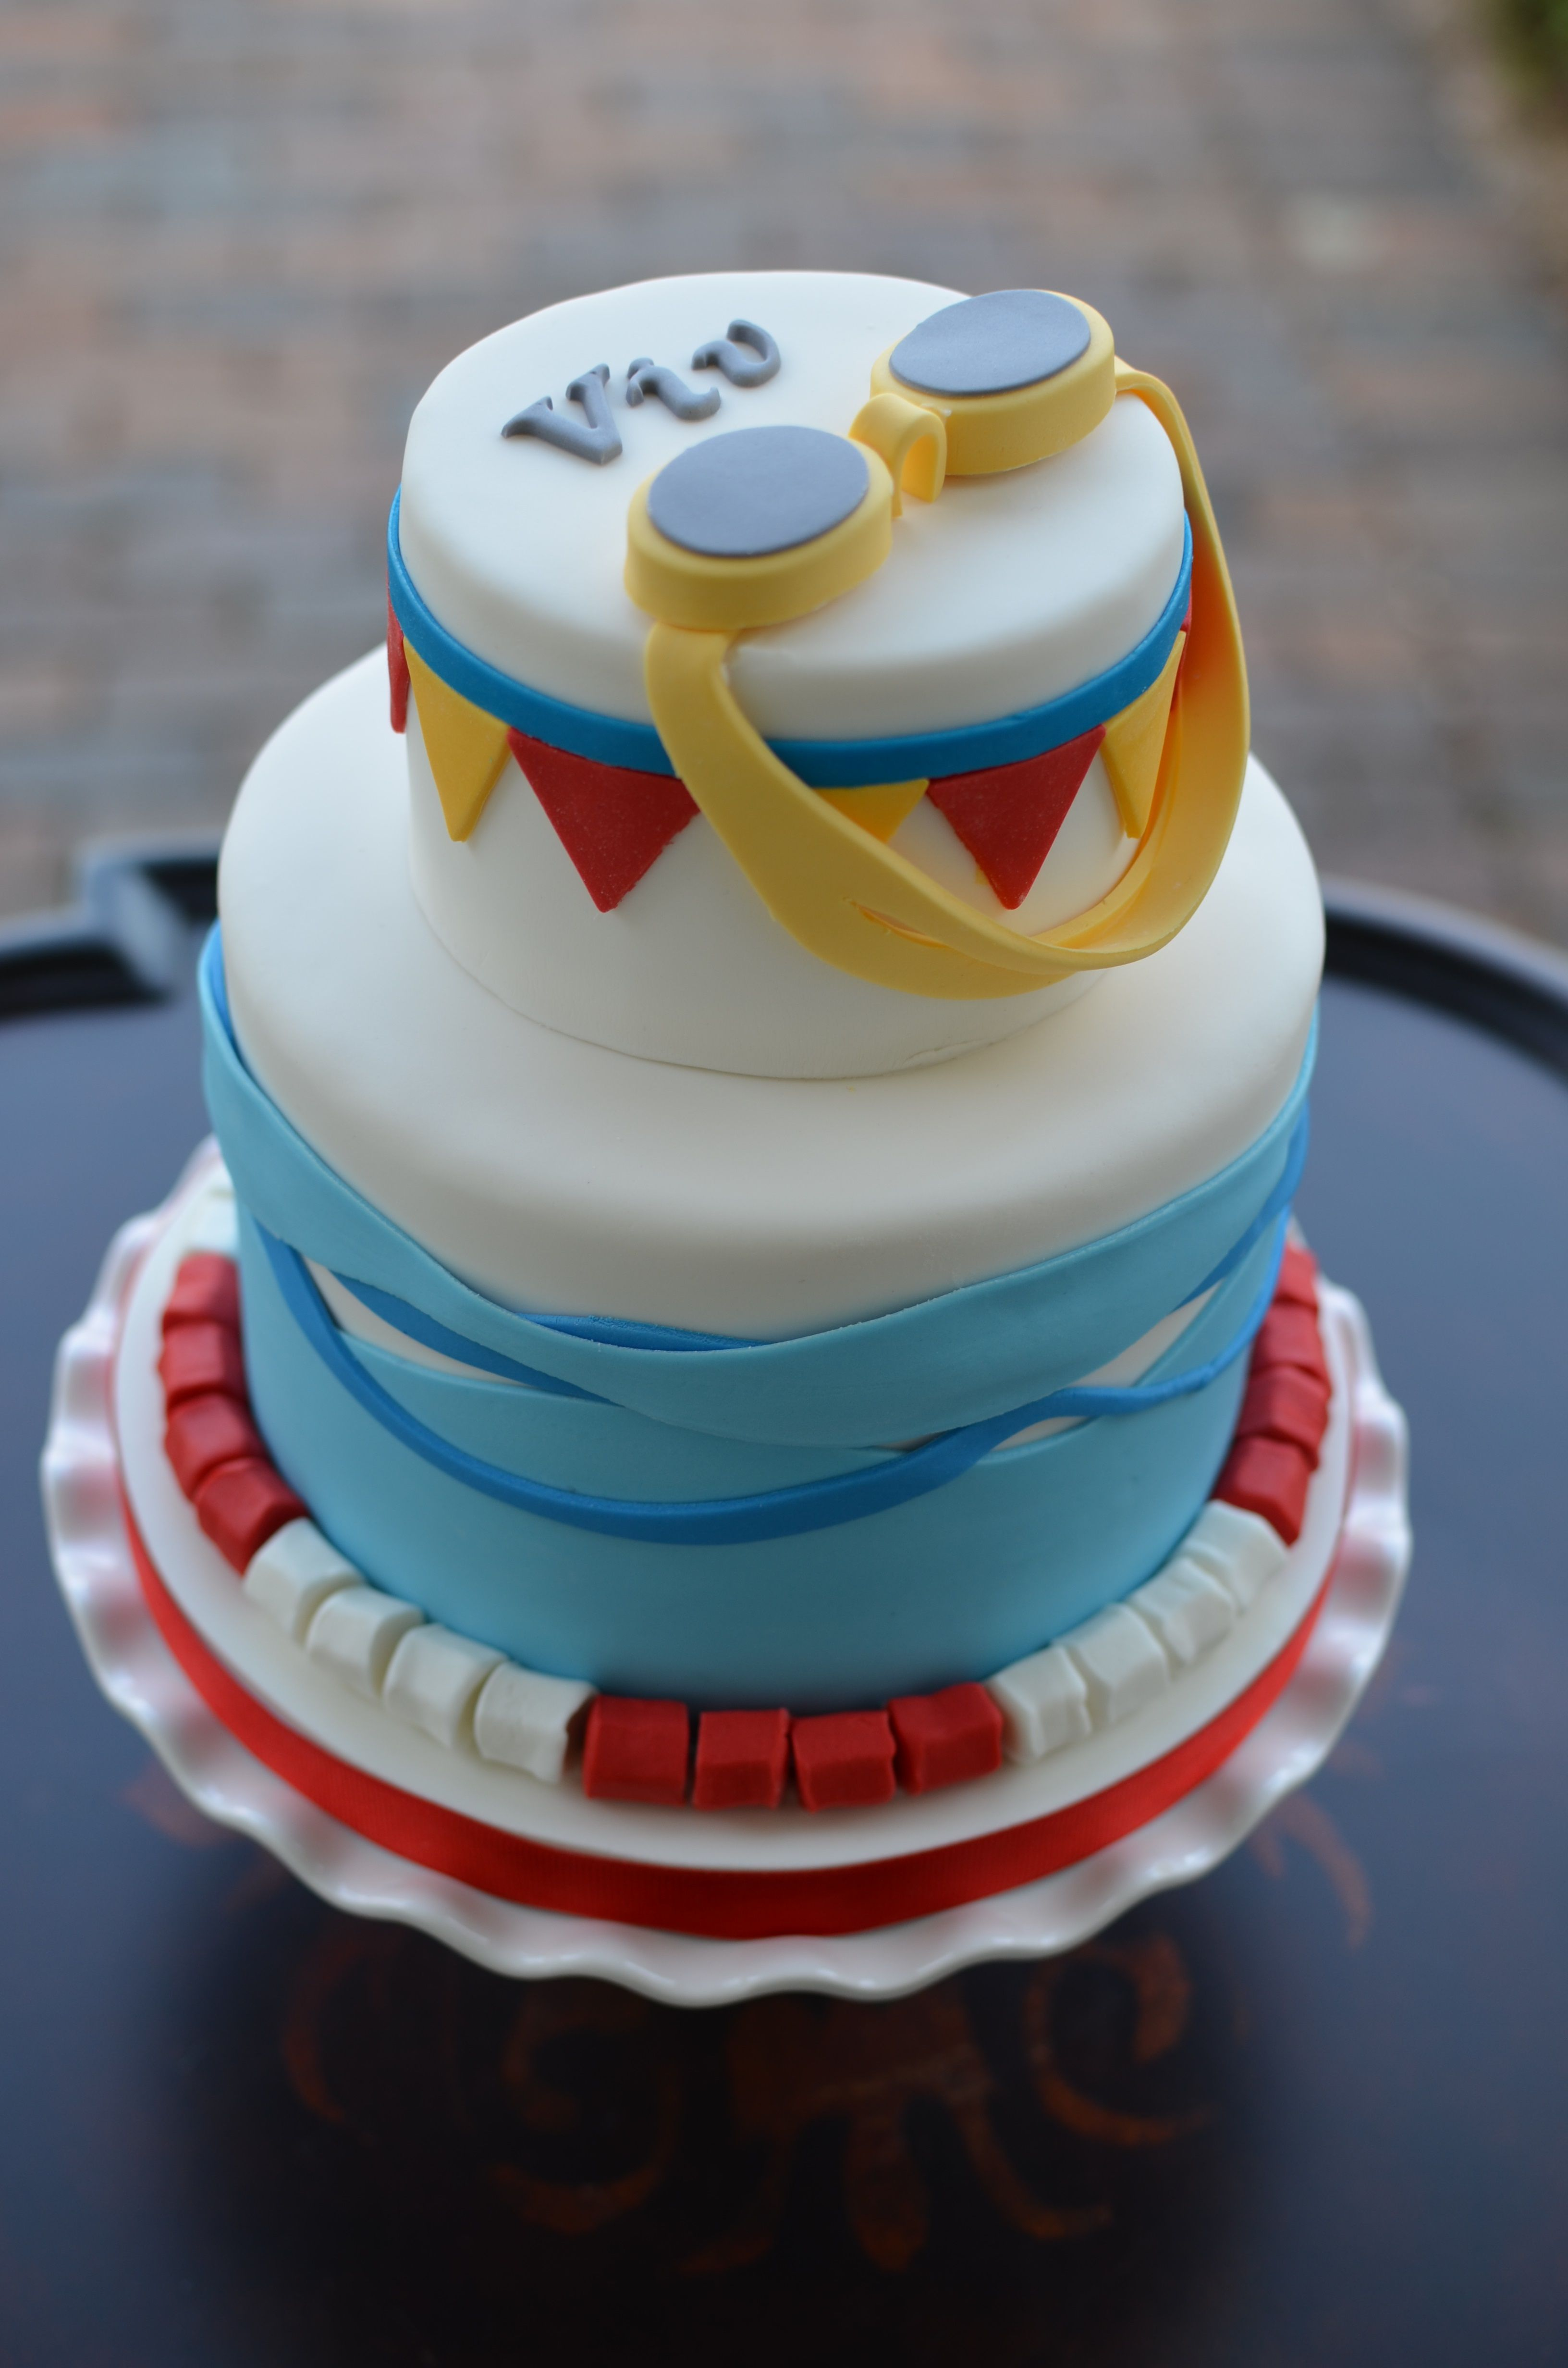 Swimming Pool Themed Birthday Cake With Goggles But A Dream Custom Cakes Pinterest